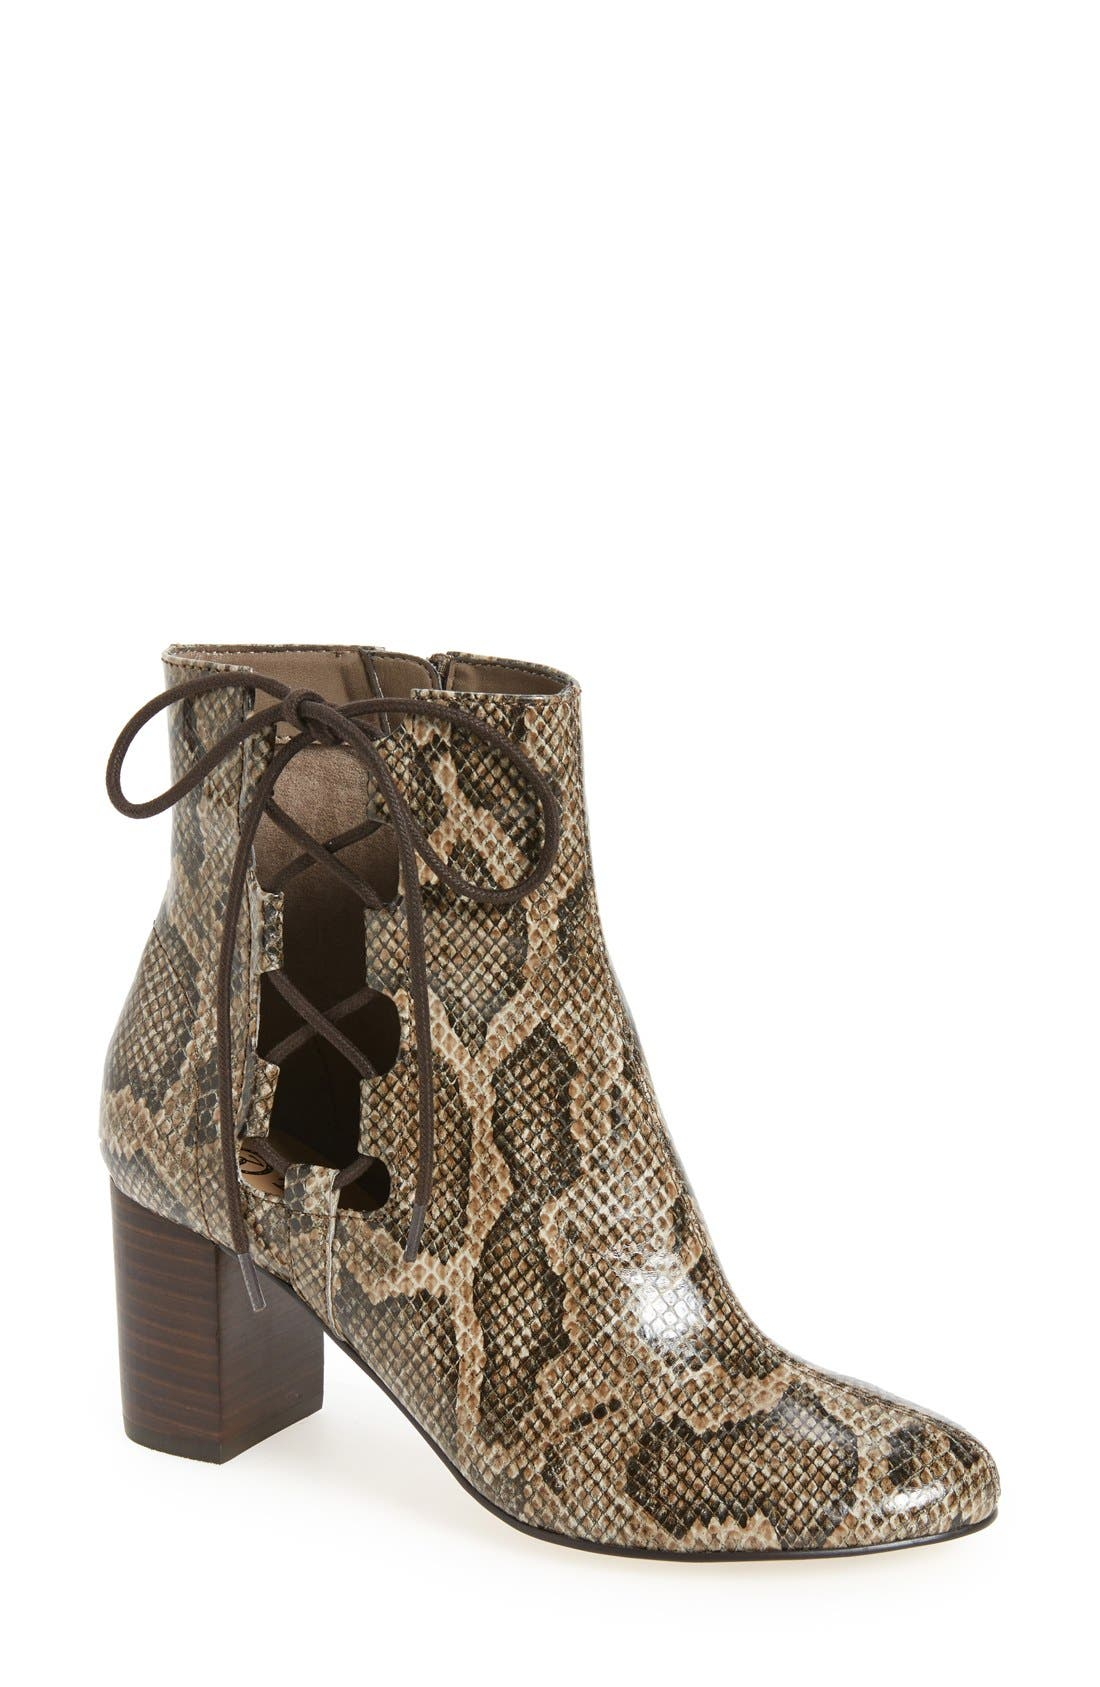 'Kirby' Bootie,                             Main thumbnail 1, color,                             Natural Snake Print Leather